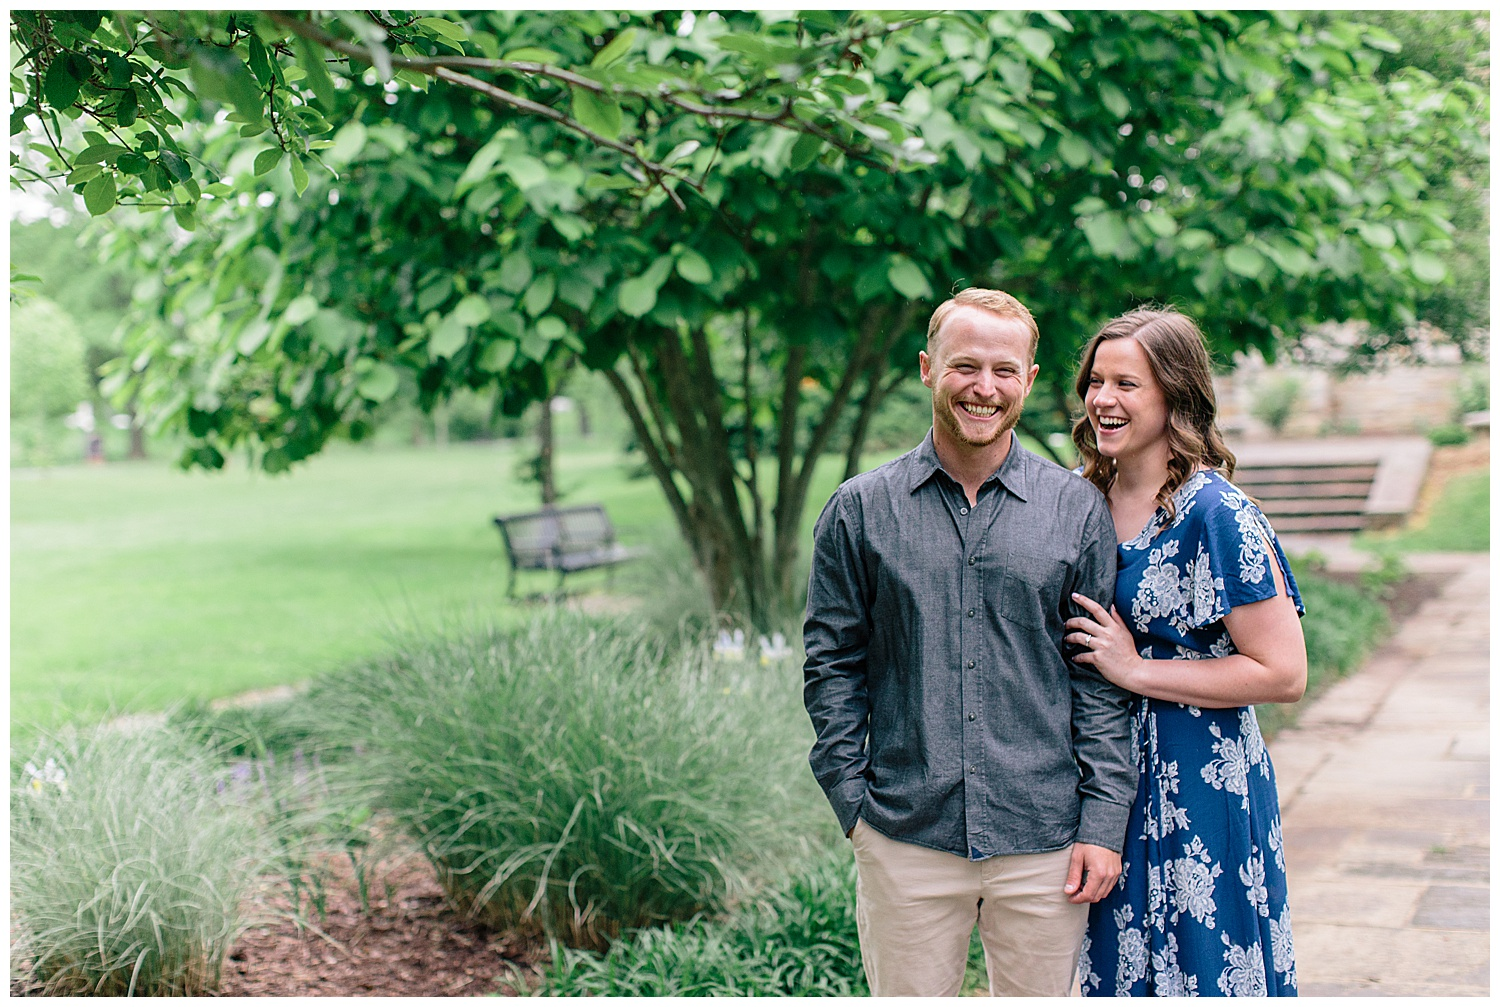 emily-belson-photography-frederick-md-engagement-11.jpg